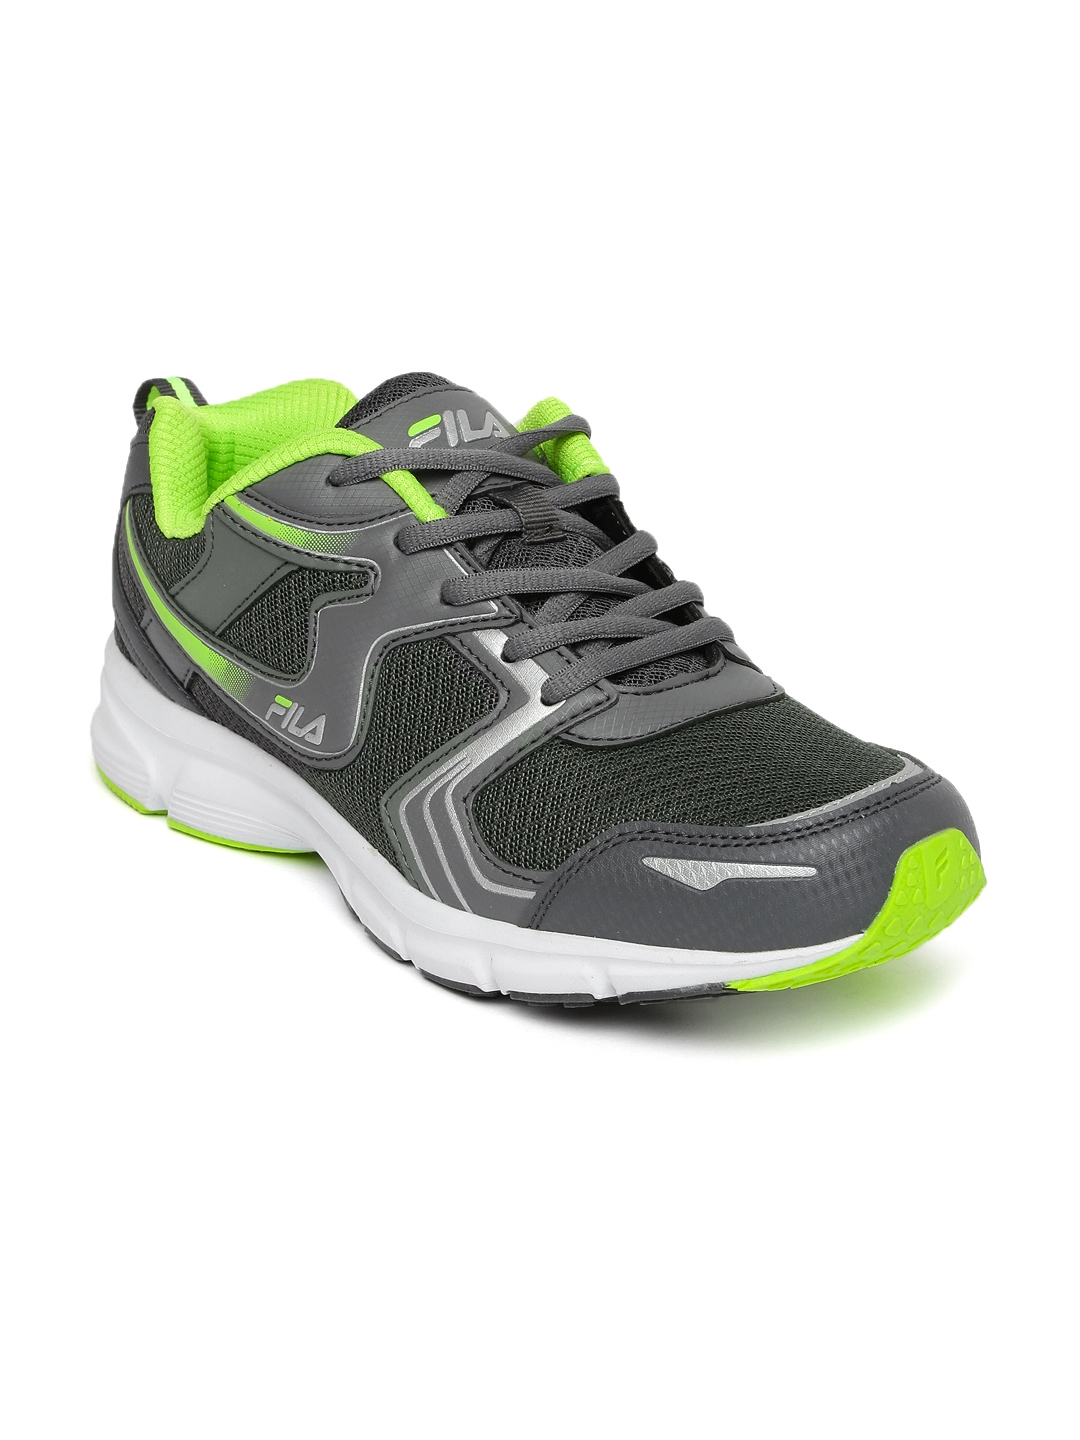 For Sports Barrel Fila Shoes Running Men Grey Buy Iv 8aW70nw